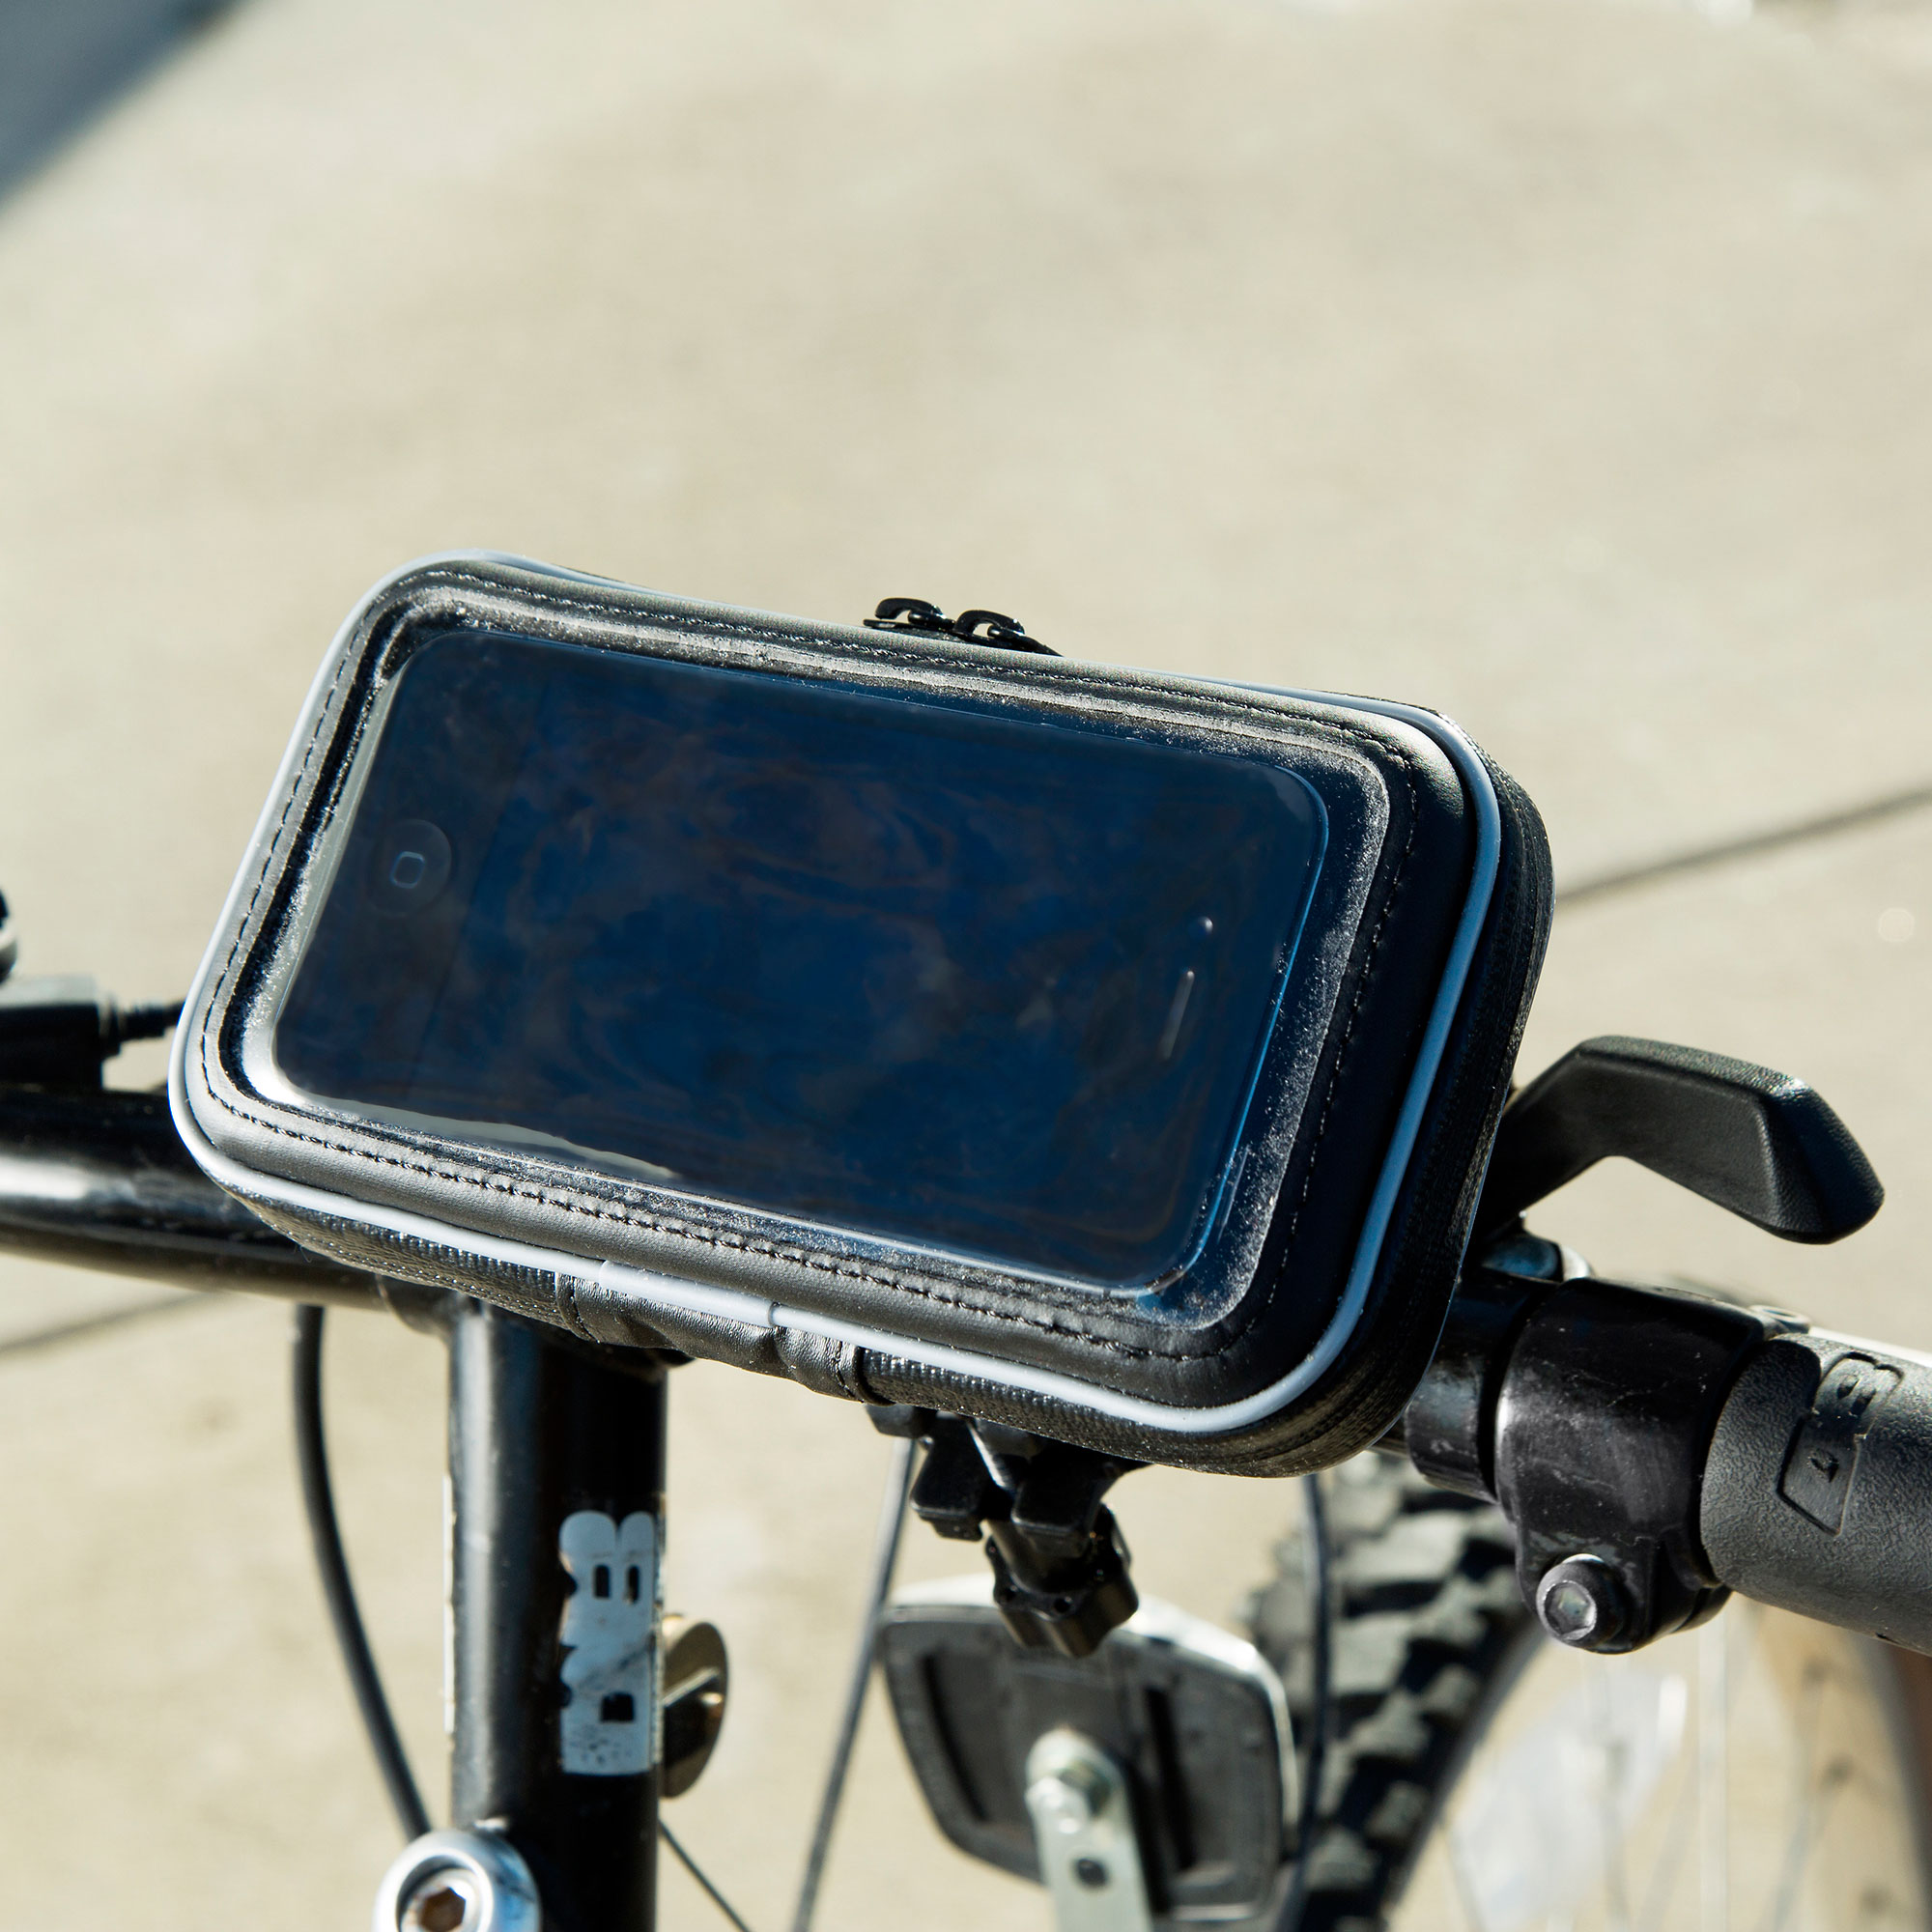 Heavy Duty Weather Resistant Bicycle / Motorcycle Handlebar Mount Holder Designed for the LG C660